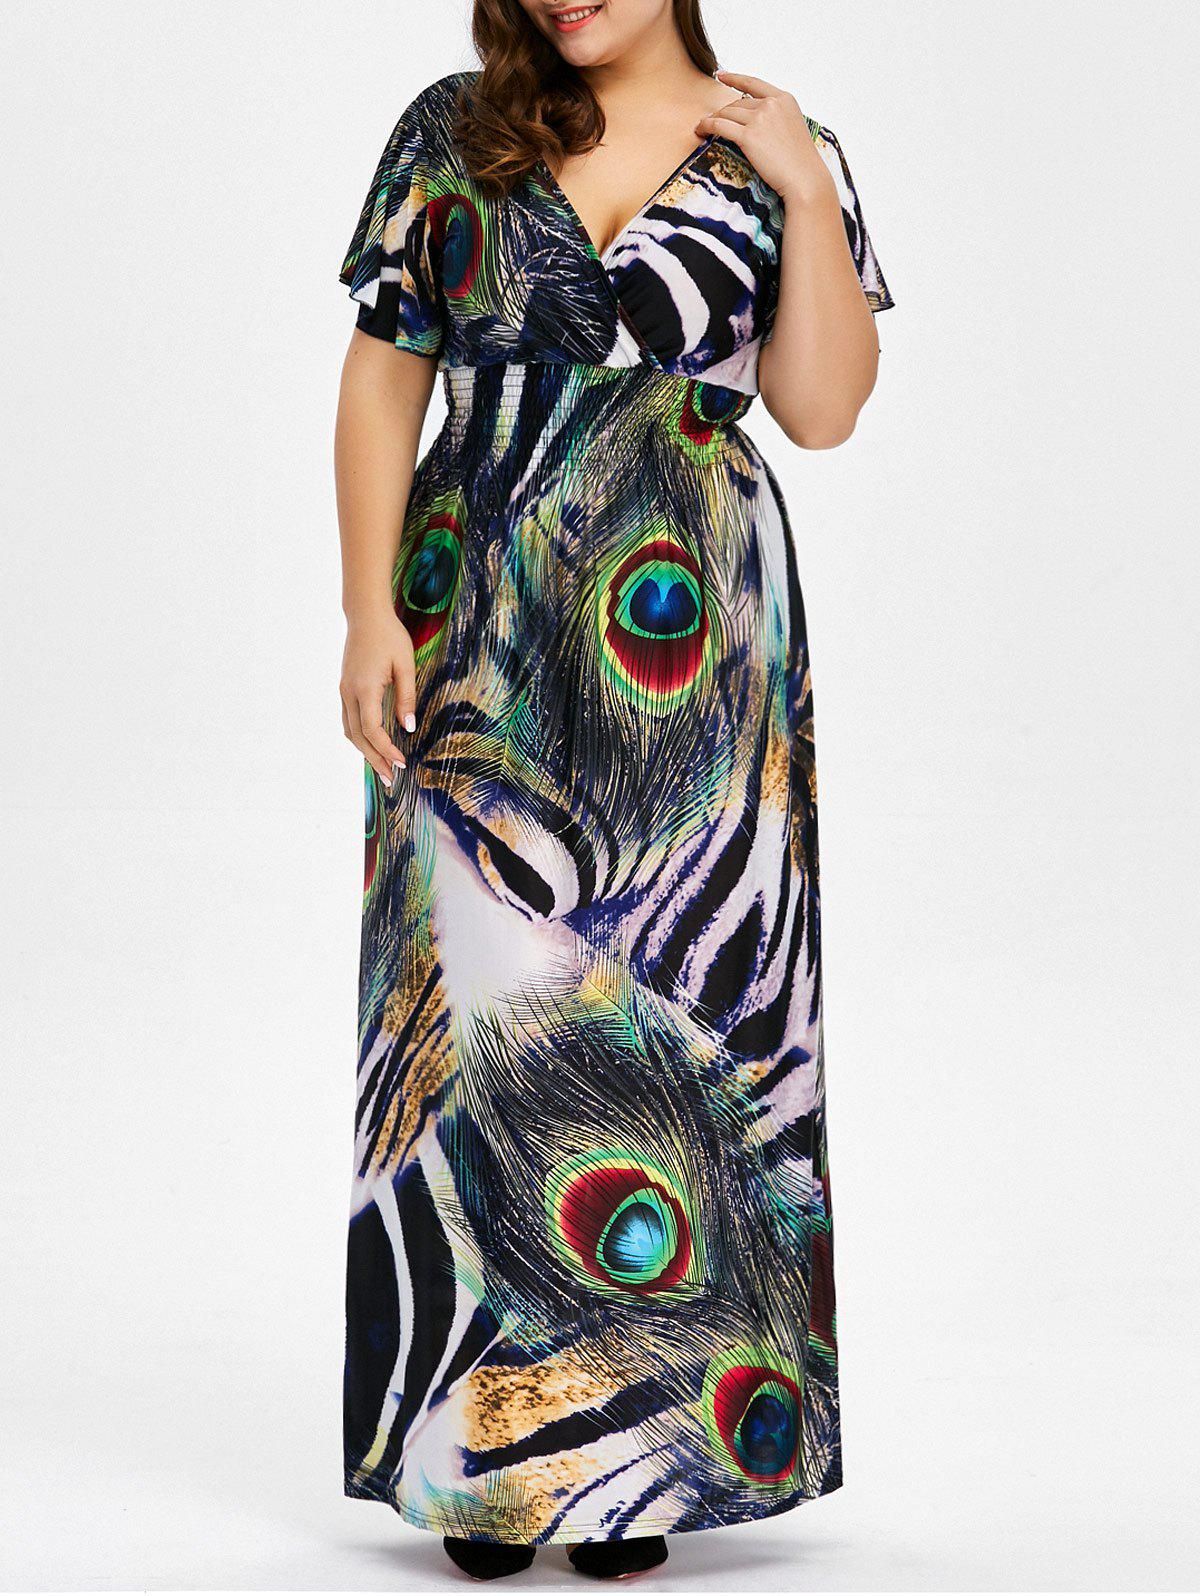 Peacock Feather Backless Plus Size Long Maxi Dress peacock feather backless plus size long maxi dress